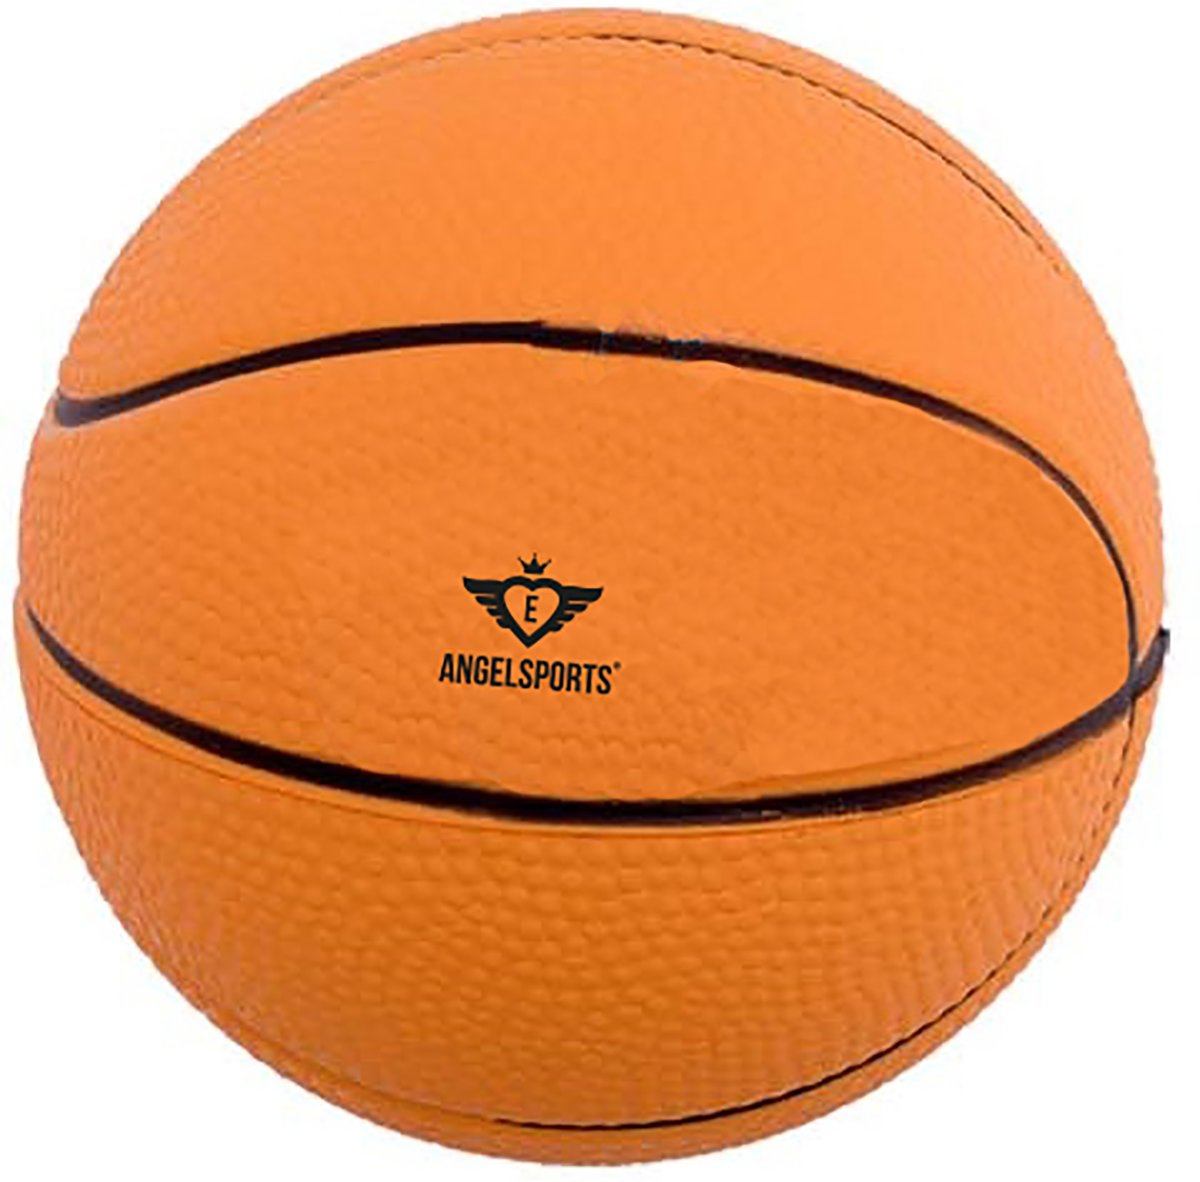 SOFT FOAM BASKETBAL ORANGE